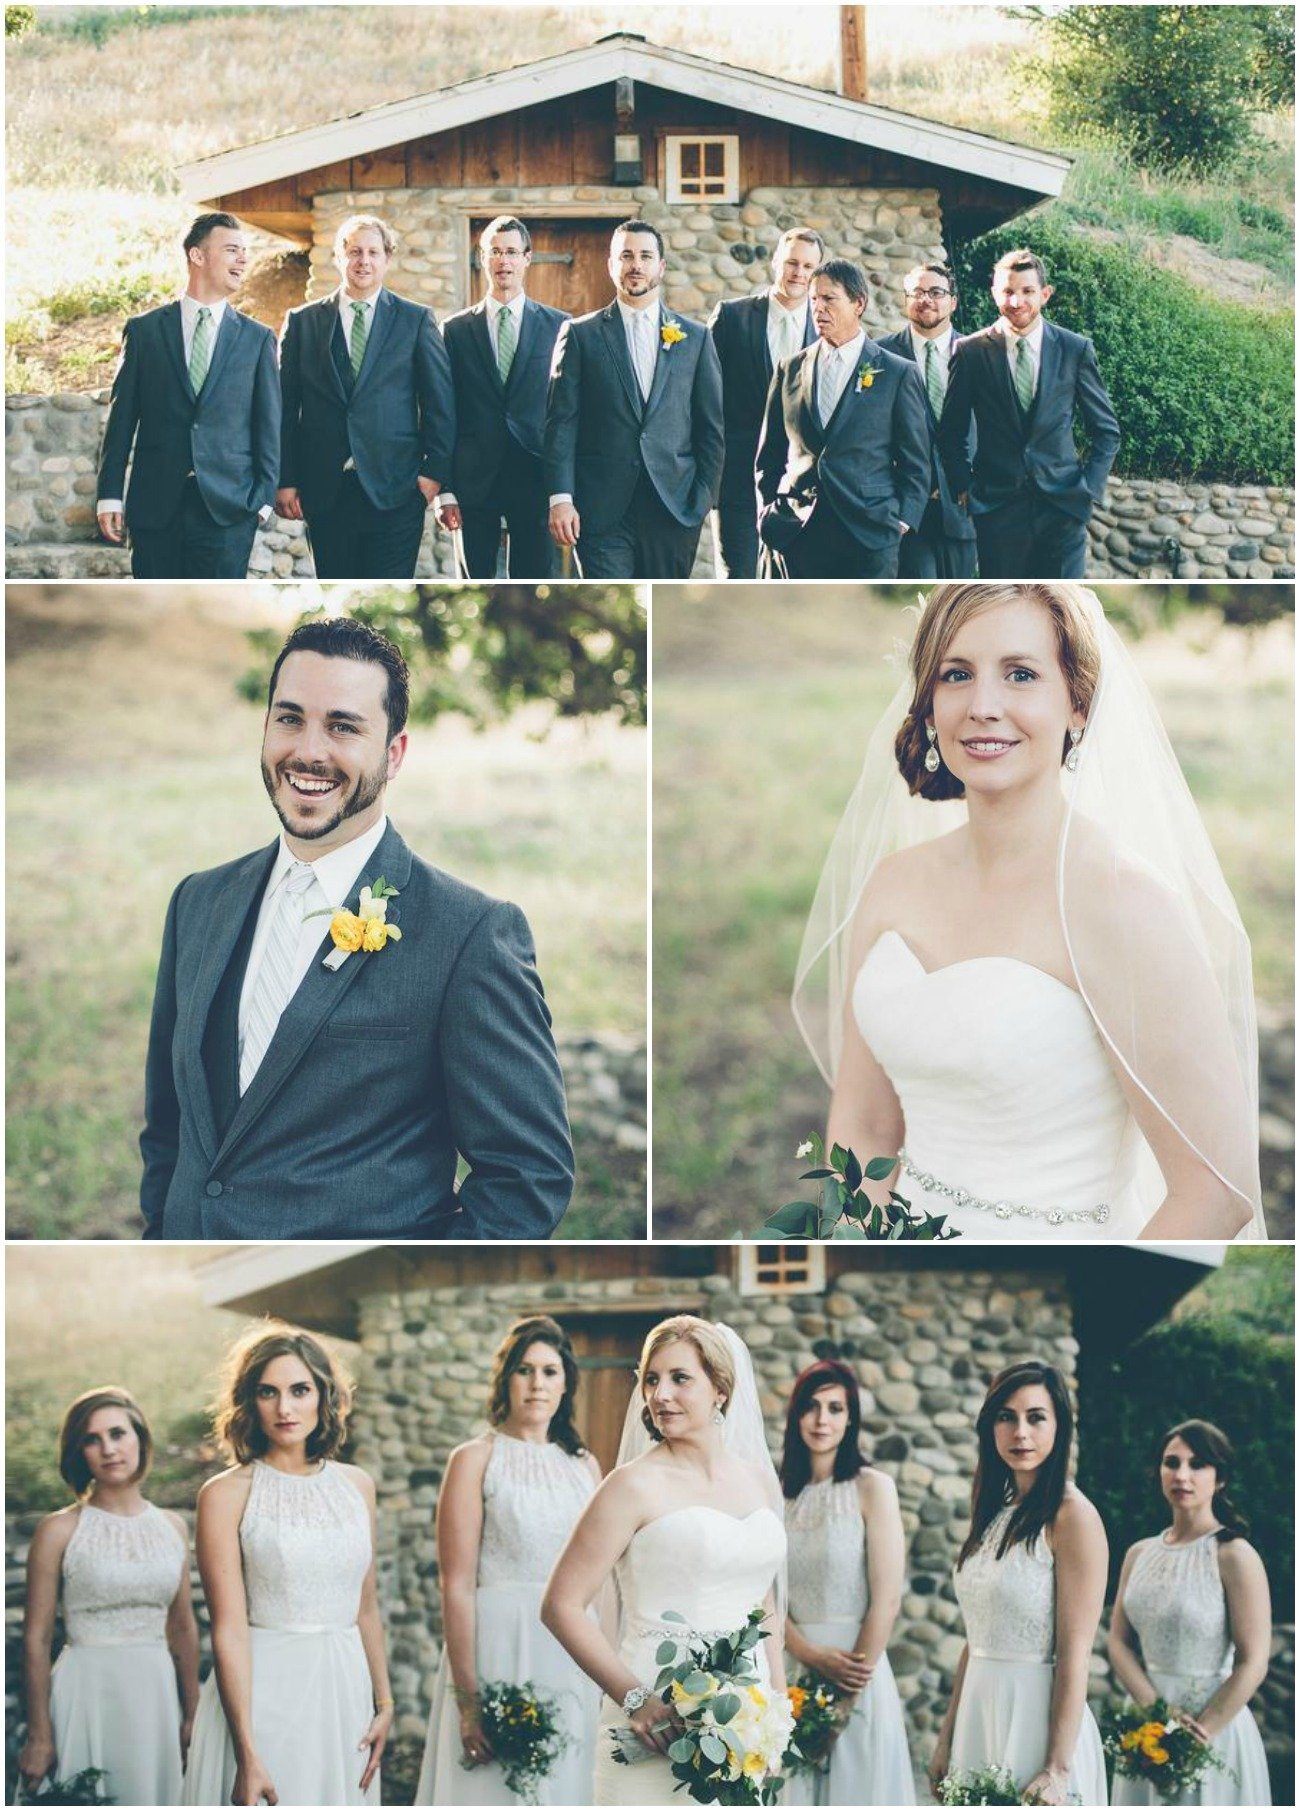 Rustic Chic Bridal Party with Bride and Groom